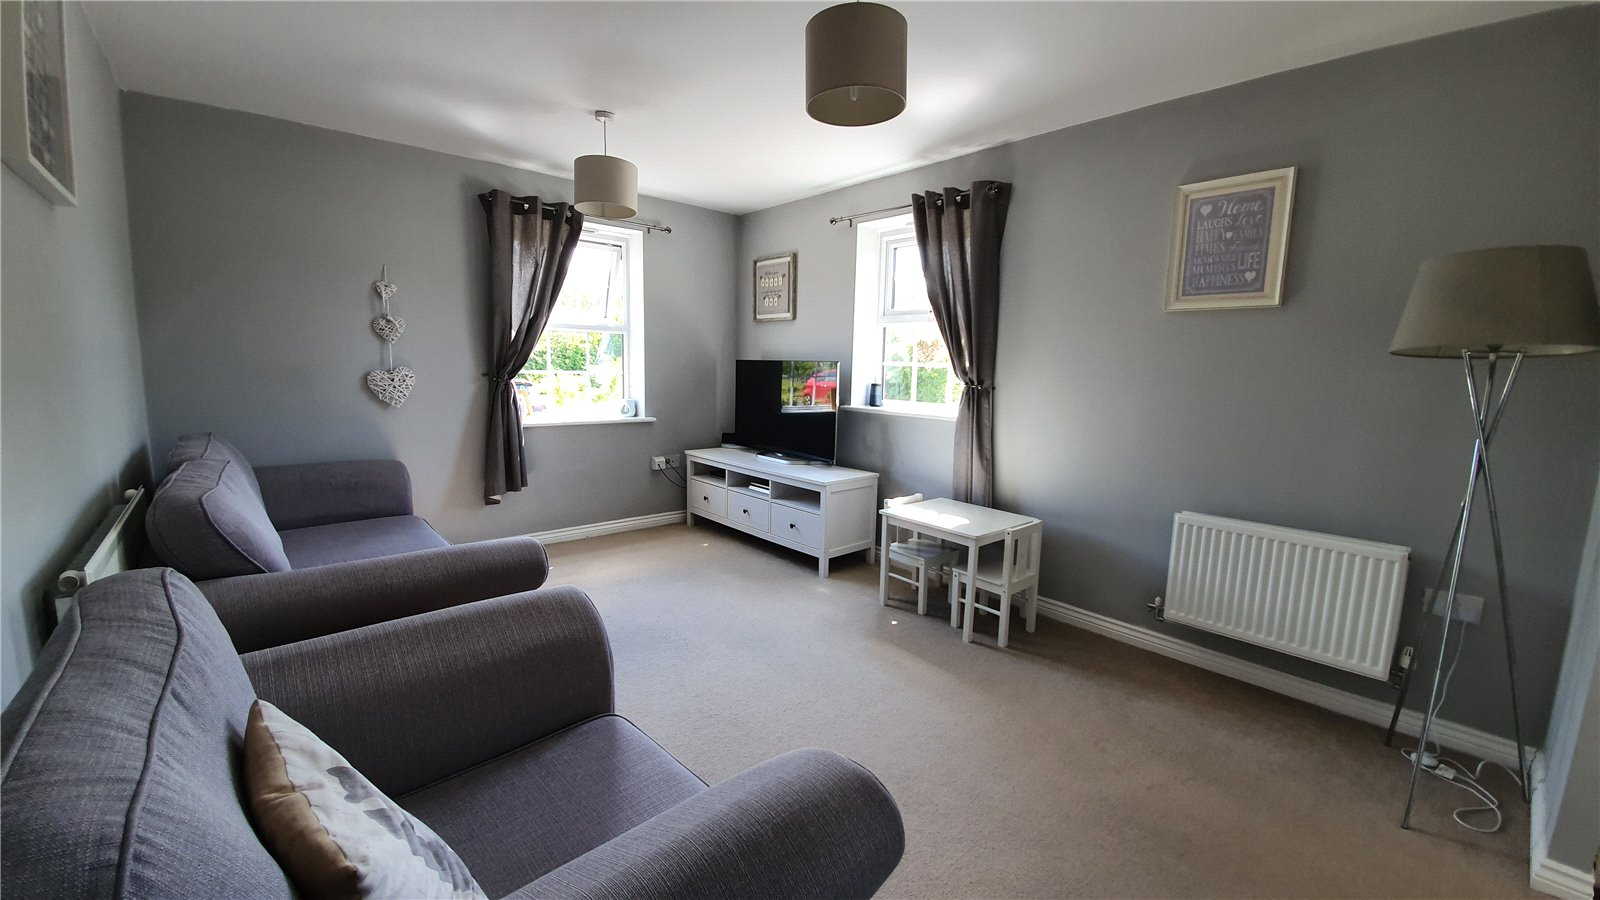 2 bed apartment for sale in Eynesbury, Delphinium Court, PE19 2LL  - Property Image 1